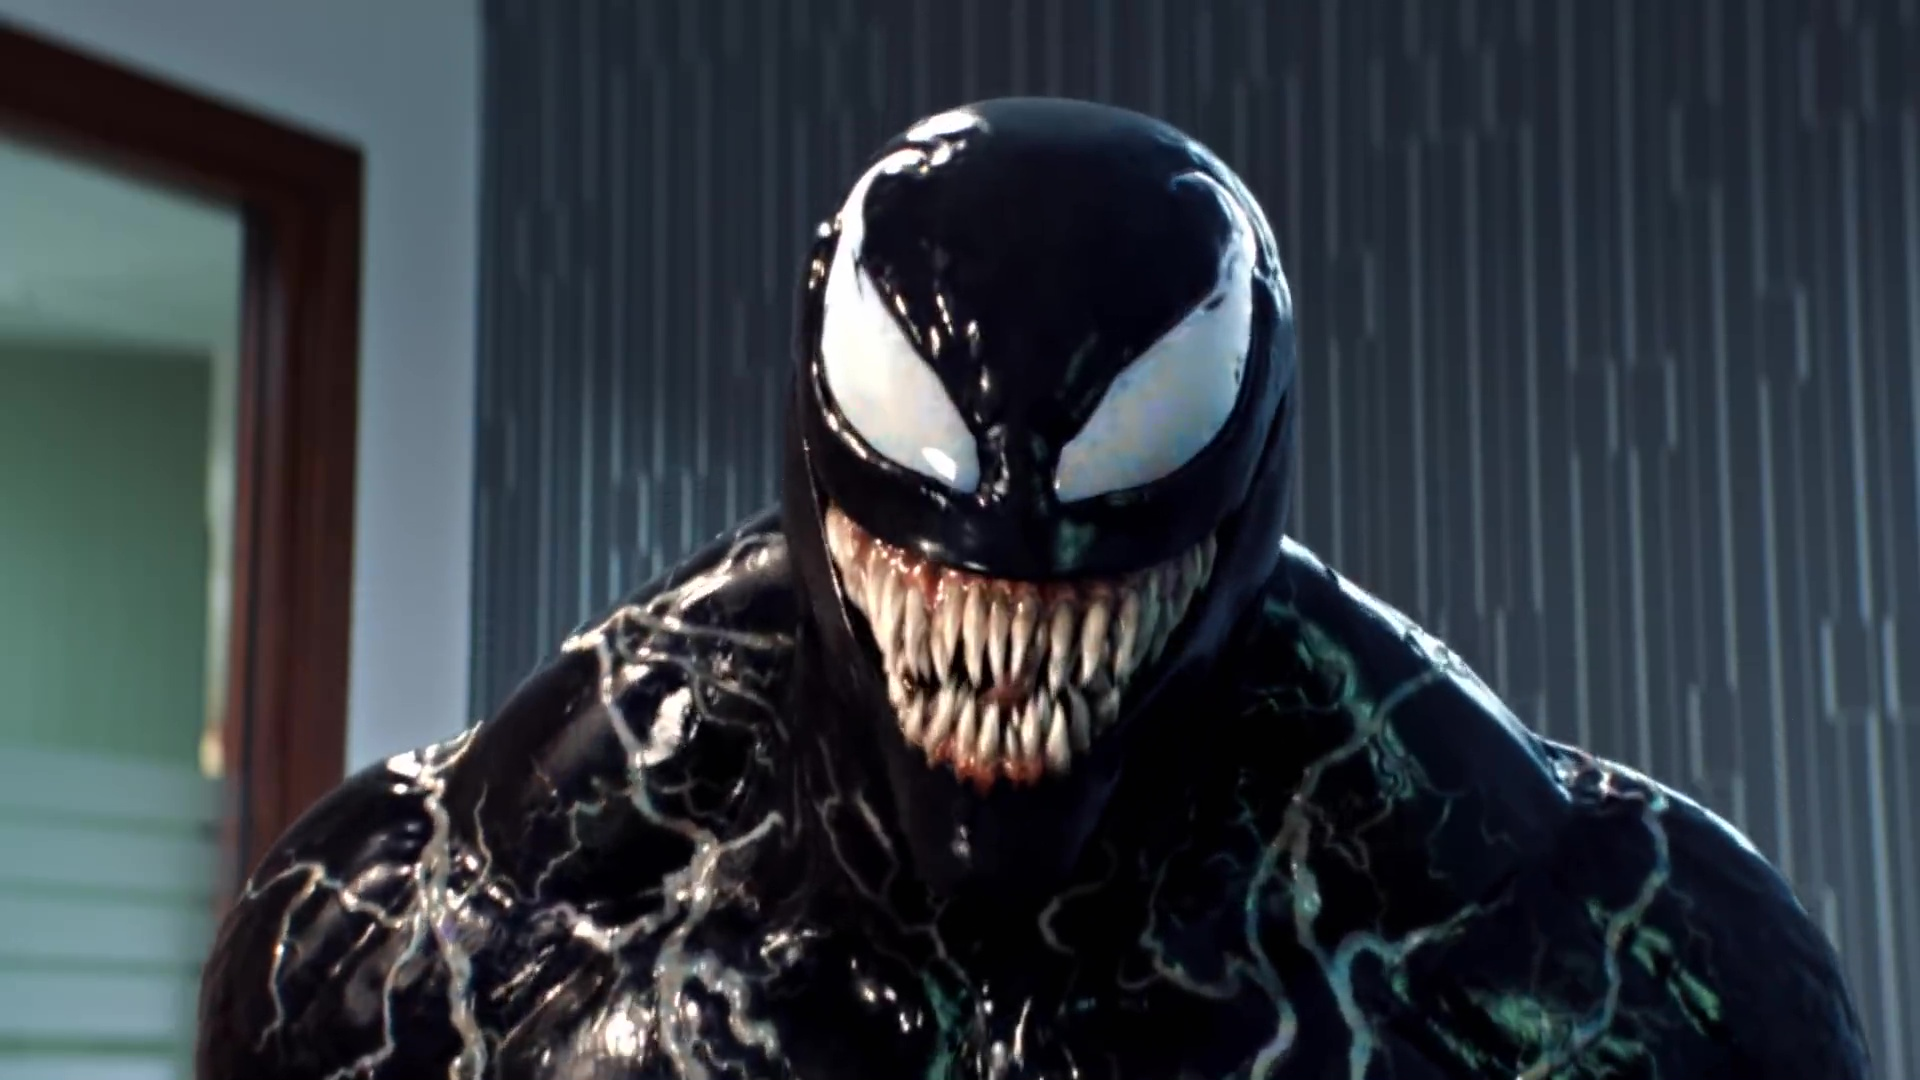 Venom Auditions To Be a New Mascot in ESPN Promo